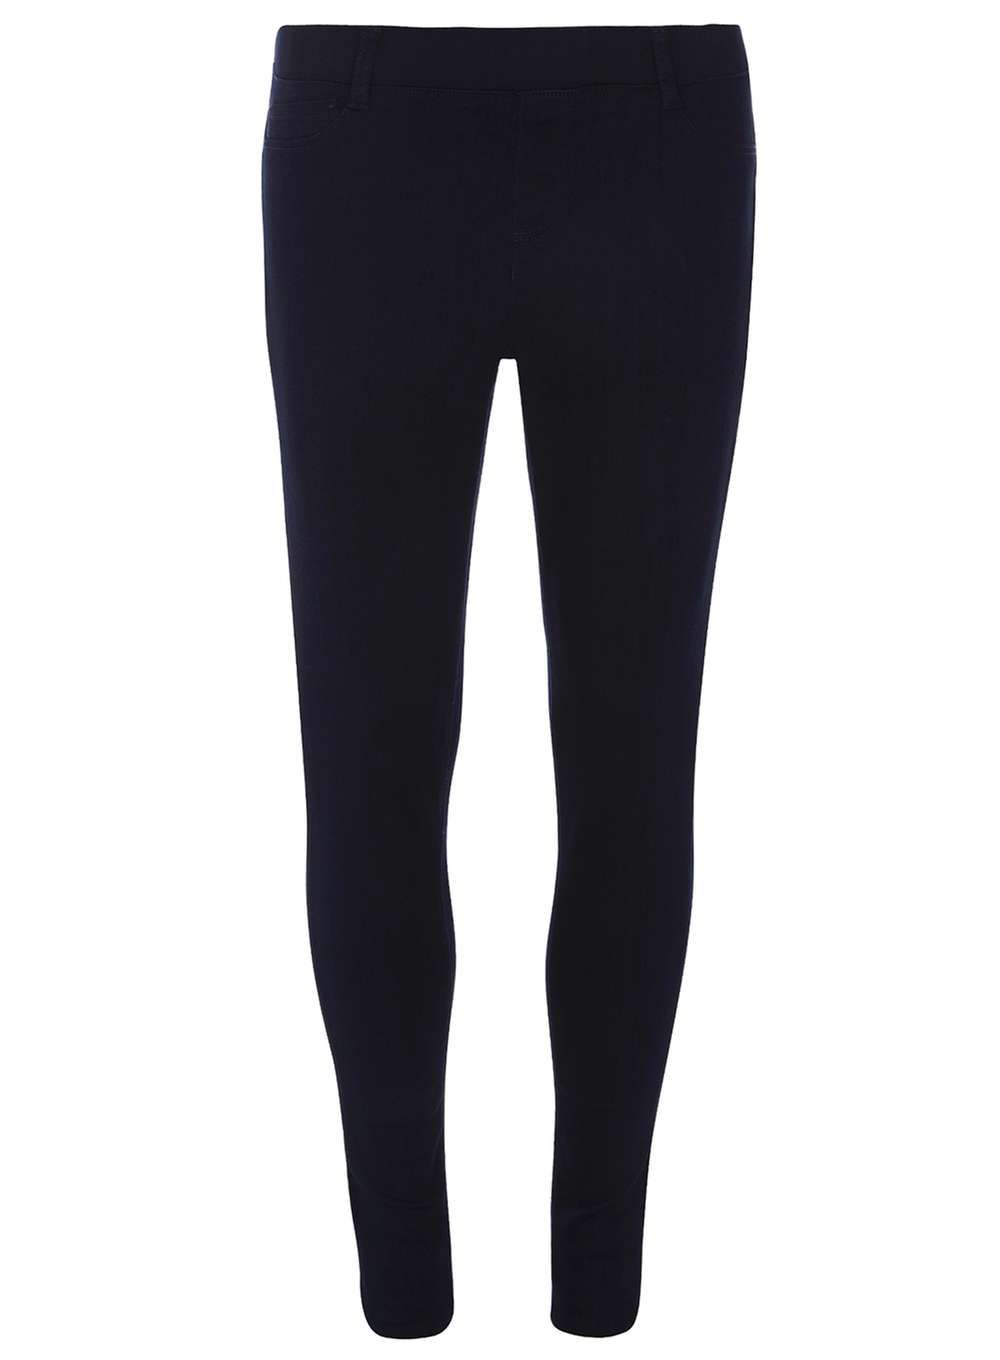 Dorothy Perkins Womens **Tall Indigo Eden Ultra Soft Jeggings- Part of our  Tall collection, these Eden jeggings in a versatile indigo wash come in an  ...